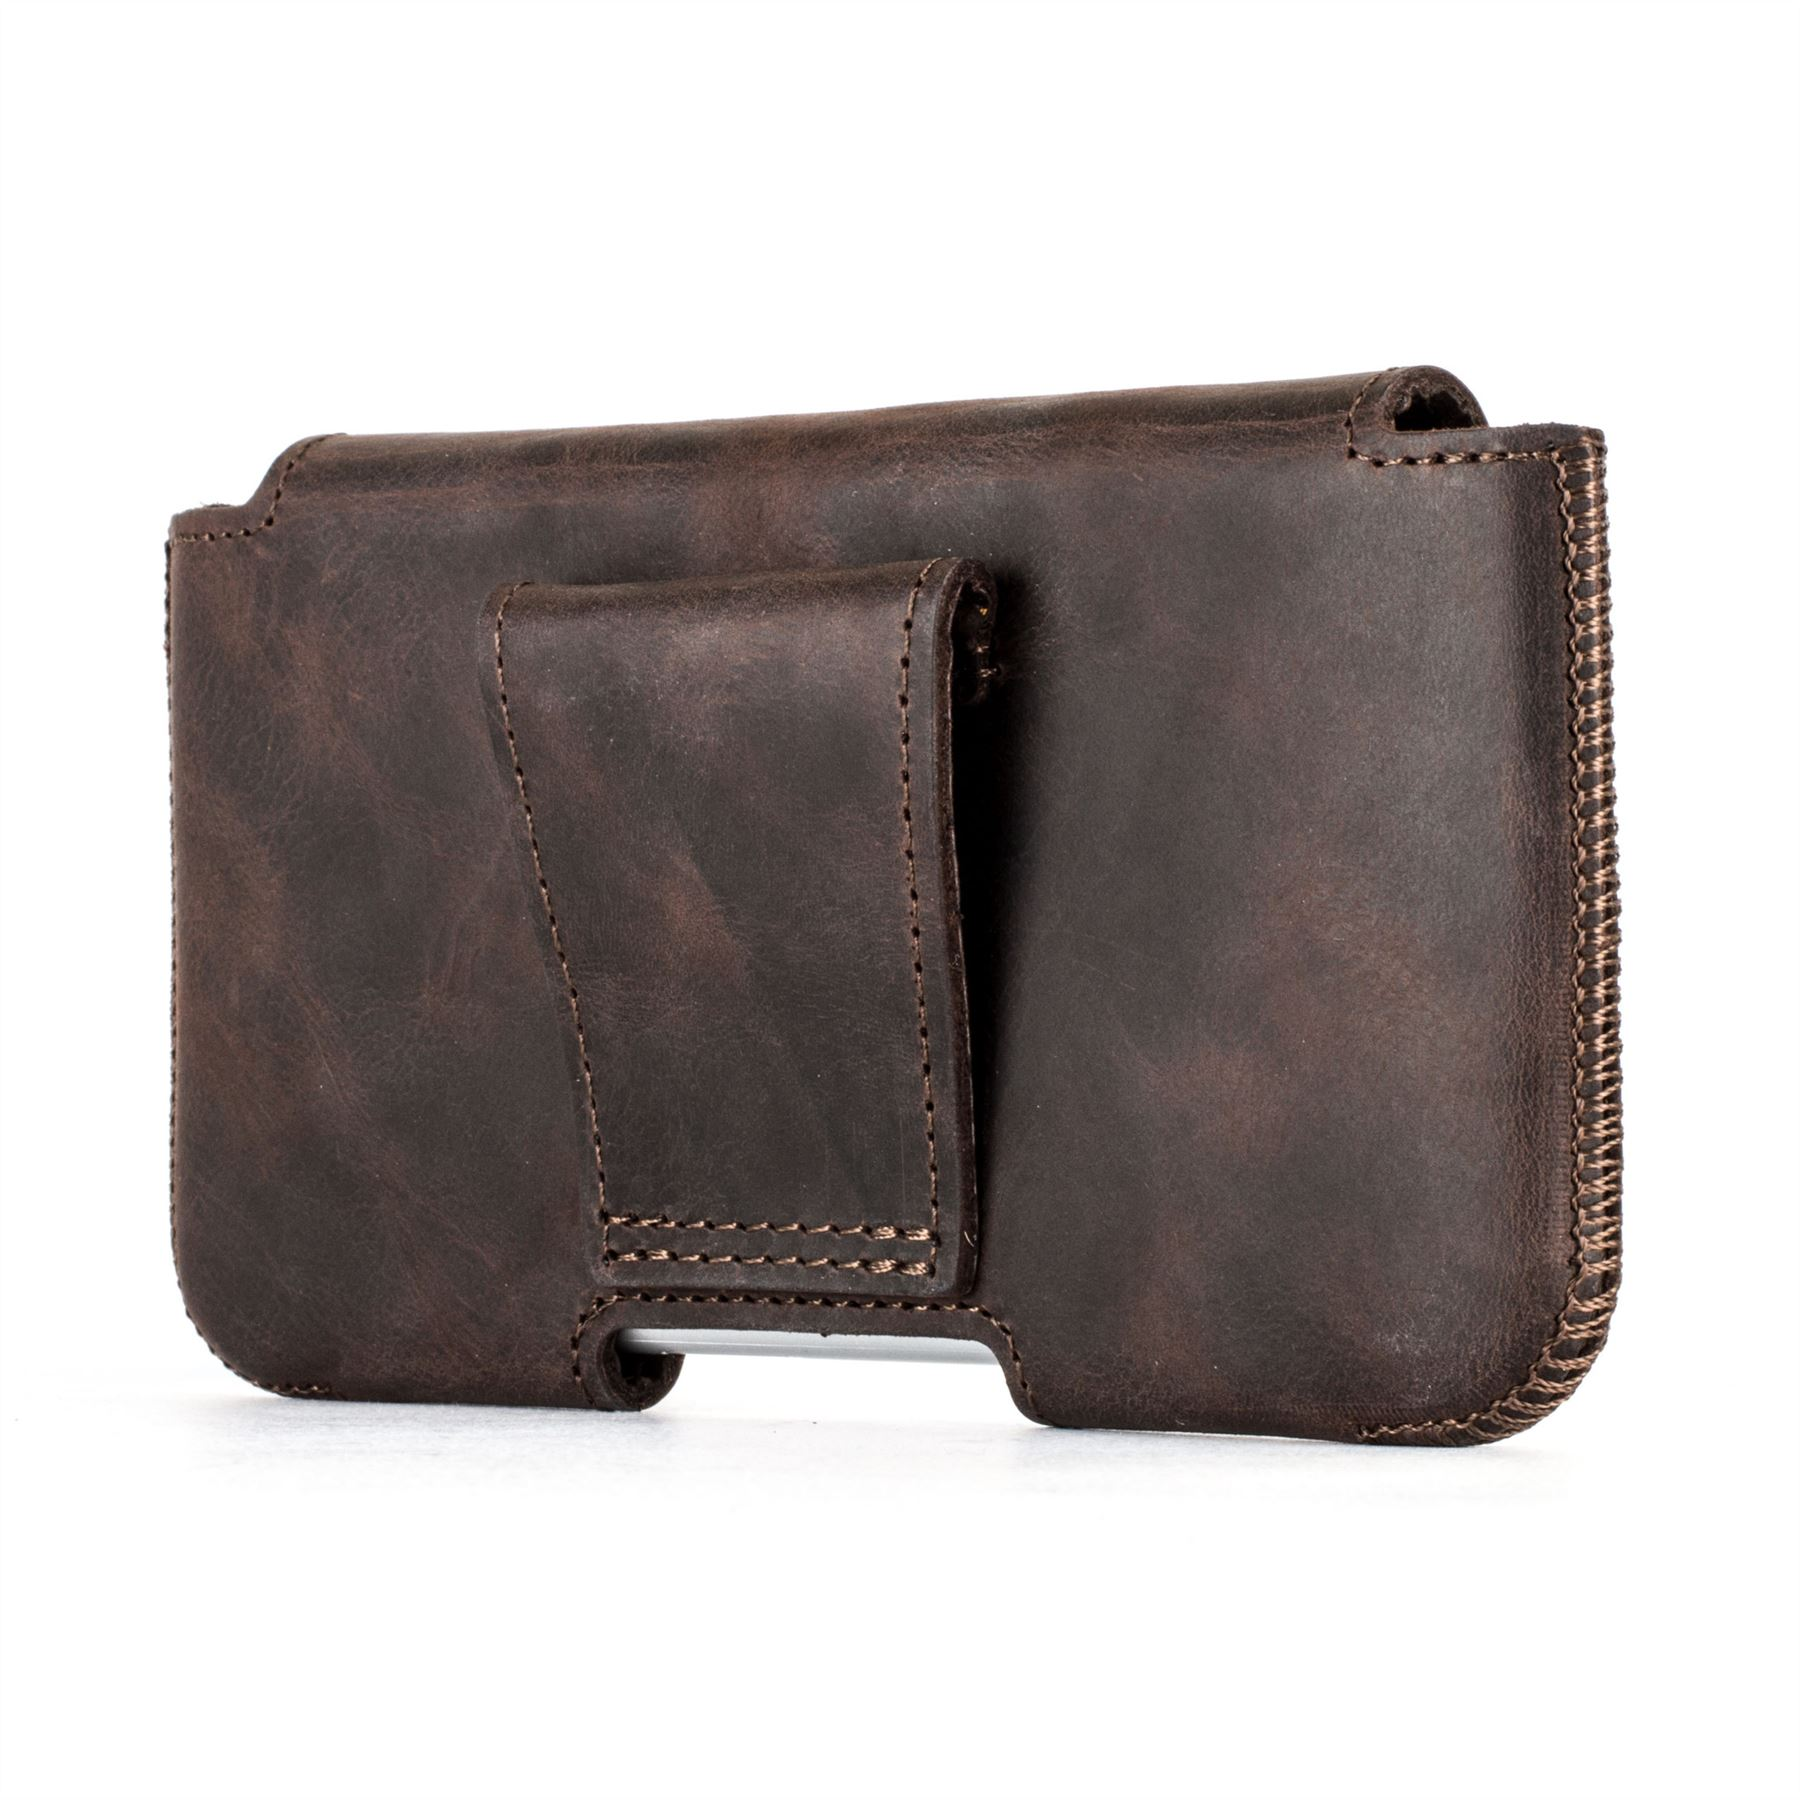 Snakehive apple iphone 5 5s se real leather belt pouch case holder ebay - Iphone 5s leather case ...